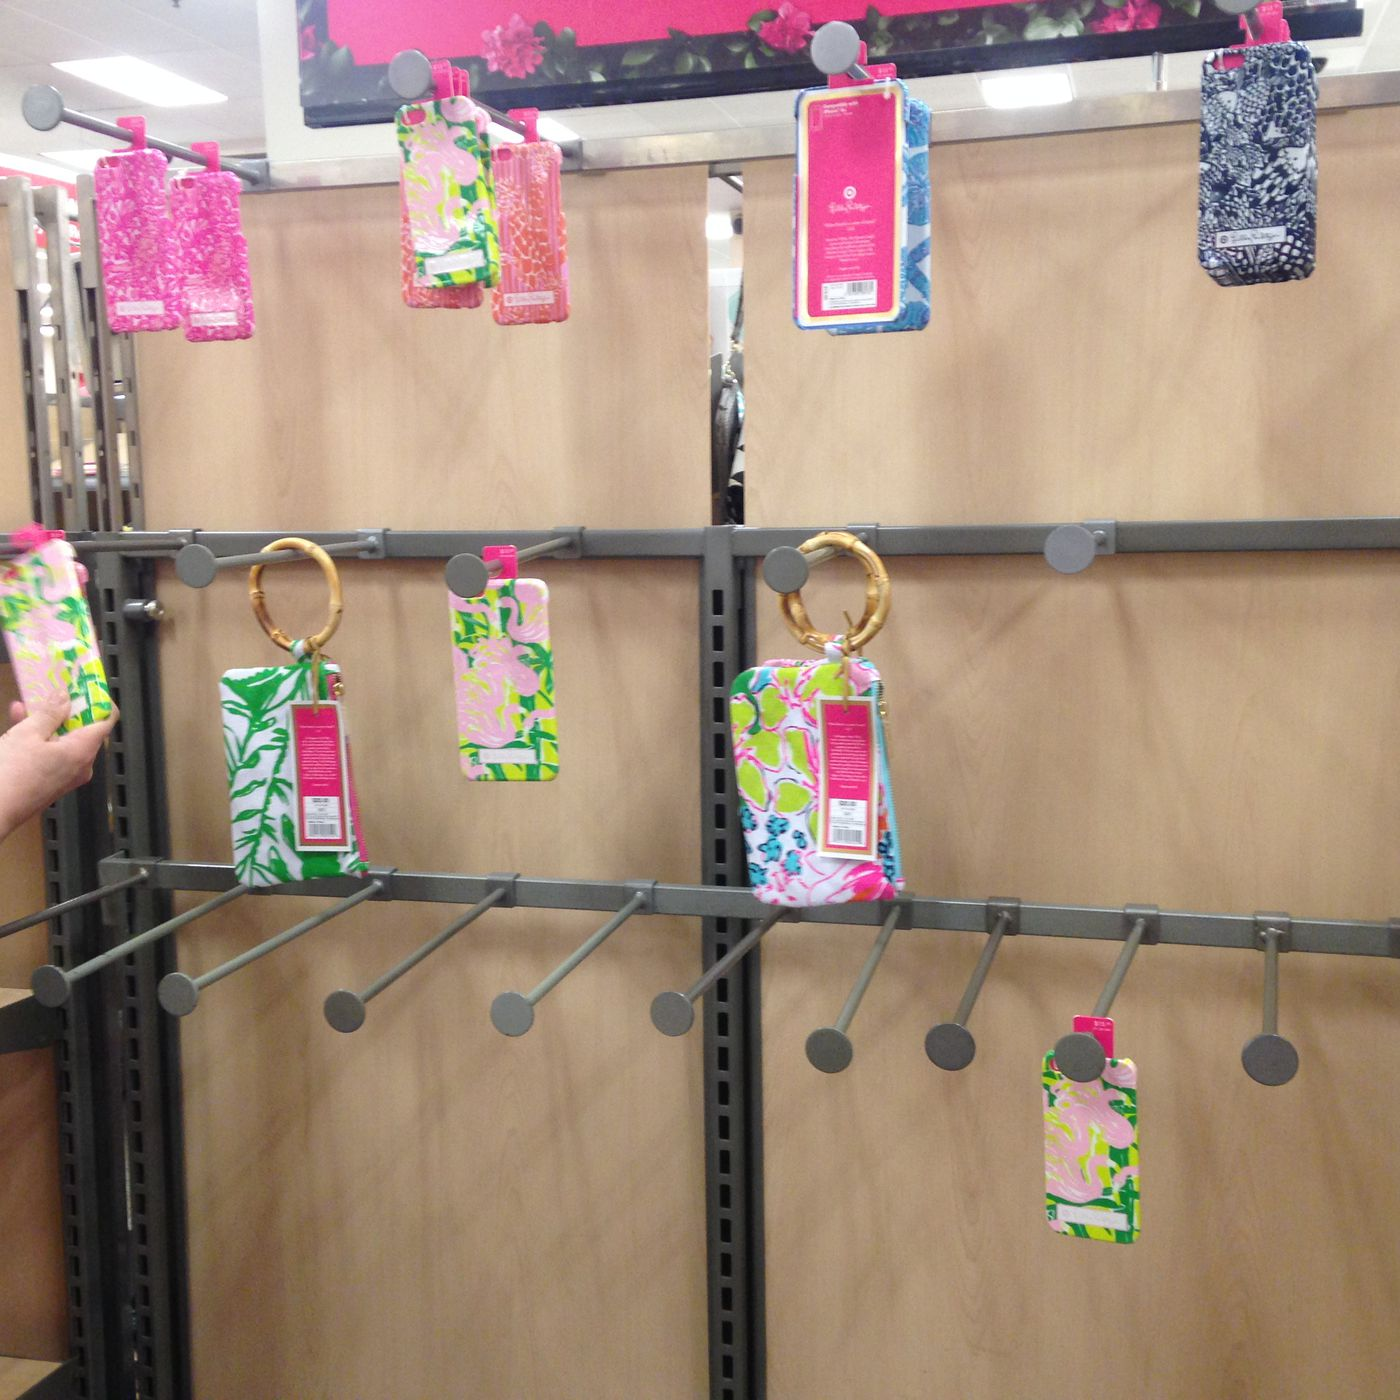 047866b988a14 Lilly Pulitzer Fans Overwhelm Target Stores - Racked